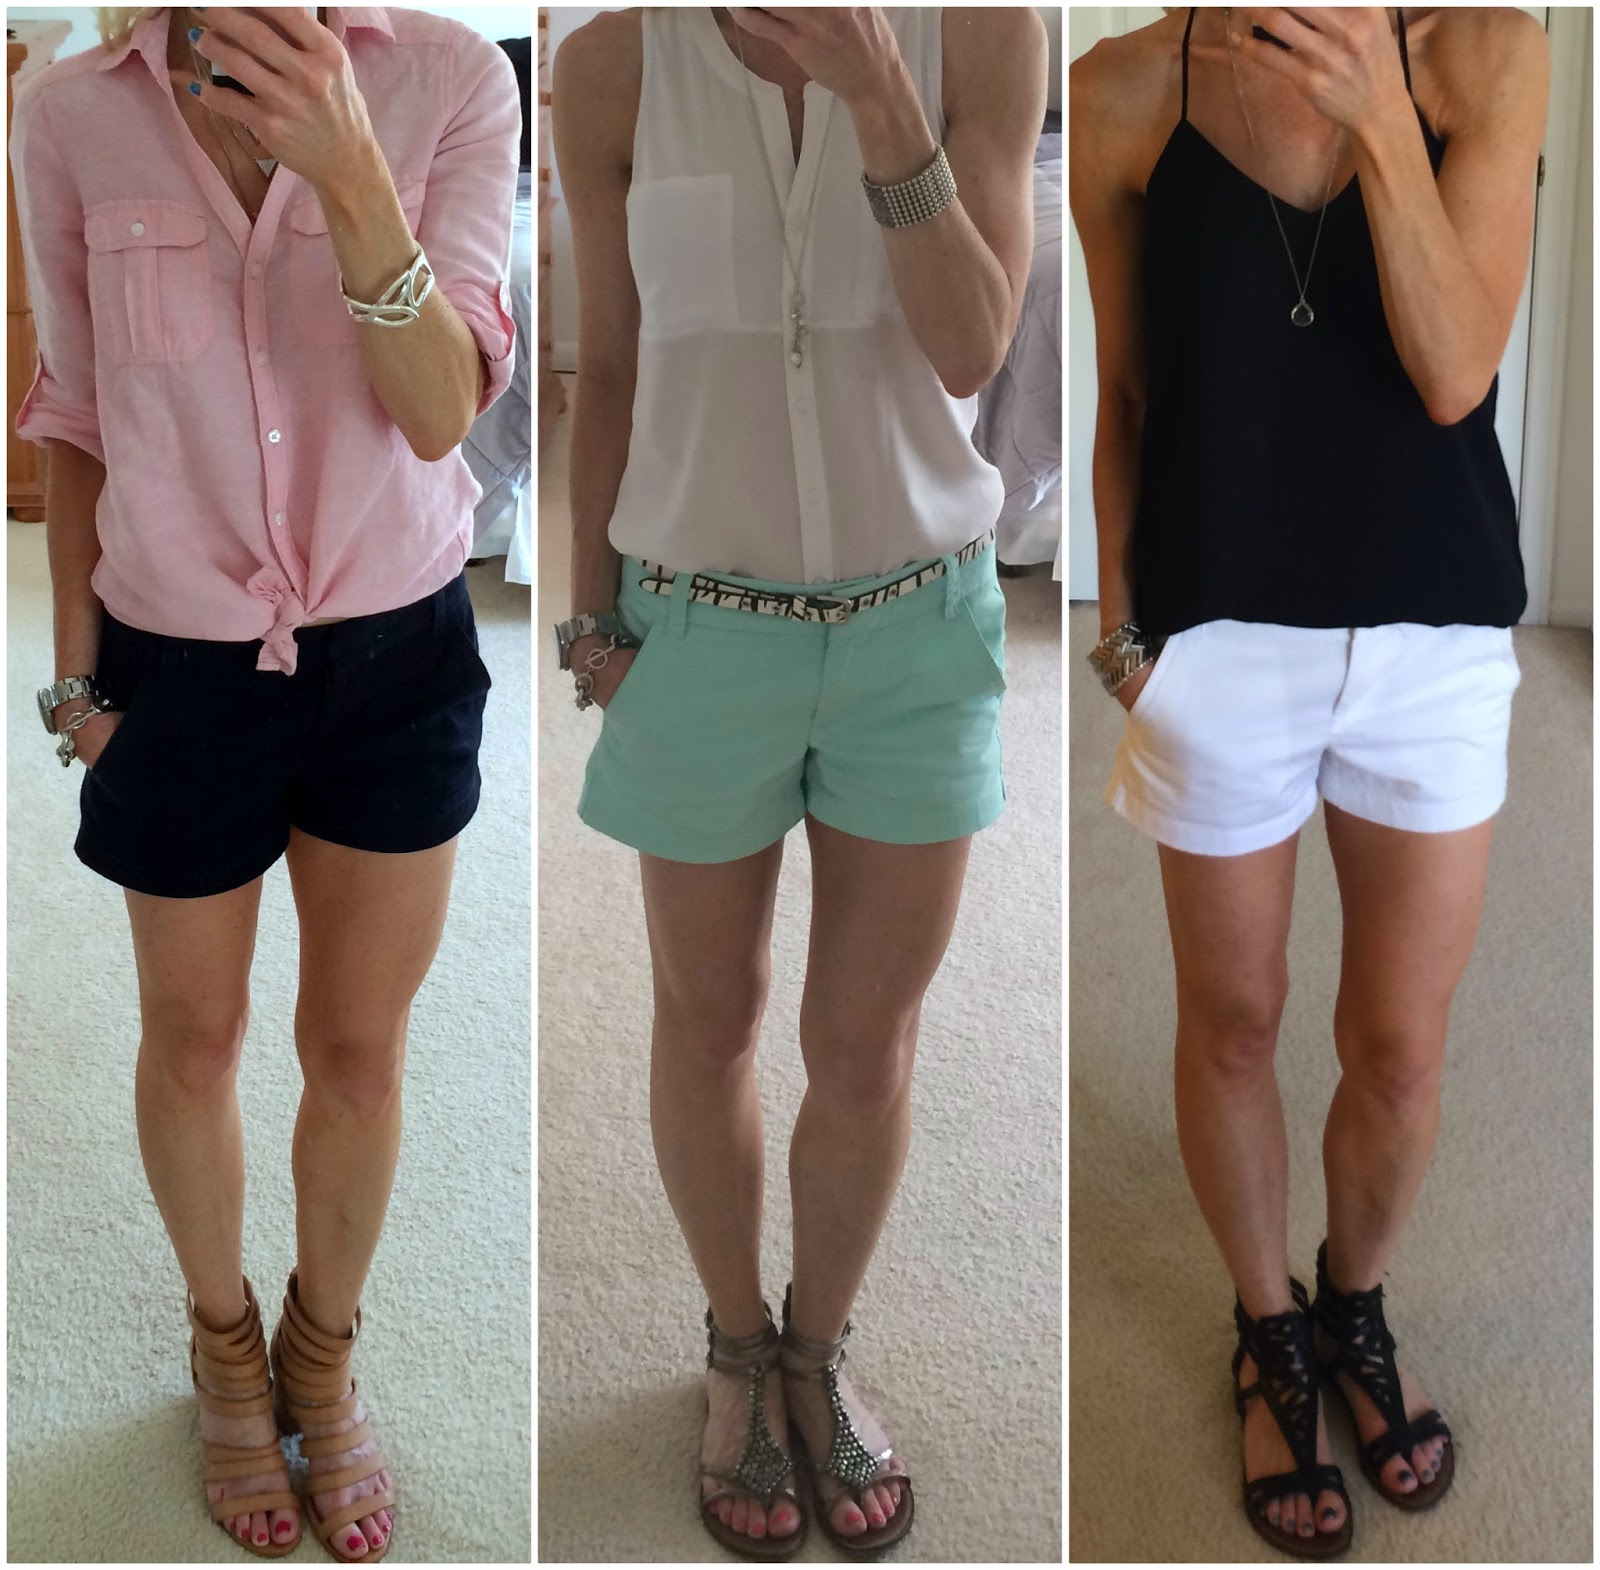 "J Crew, J Crew Factory 3"" Chino Shorts Style Options"